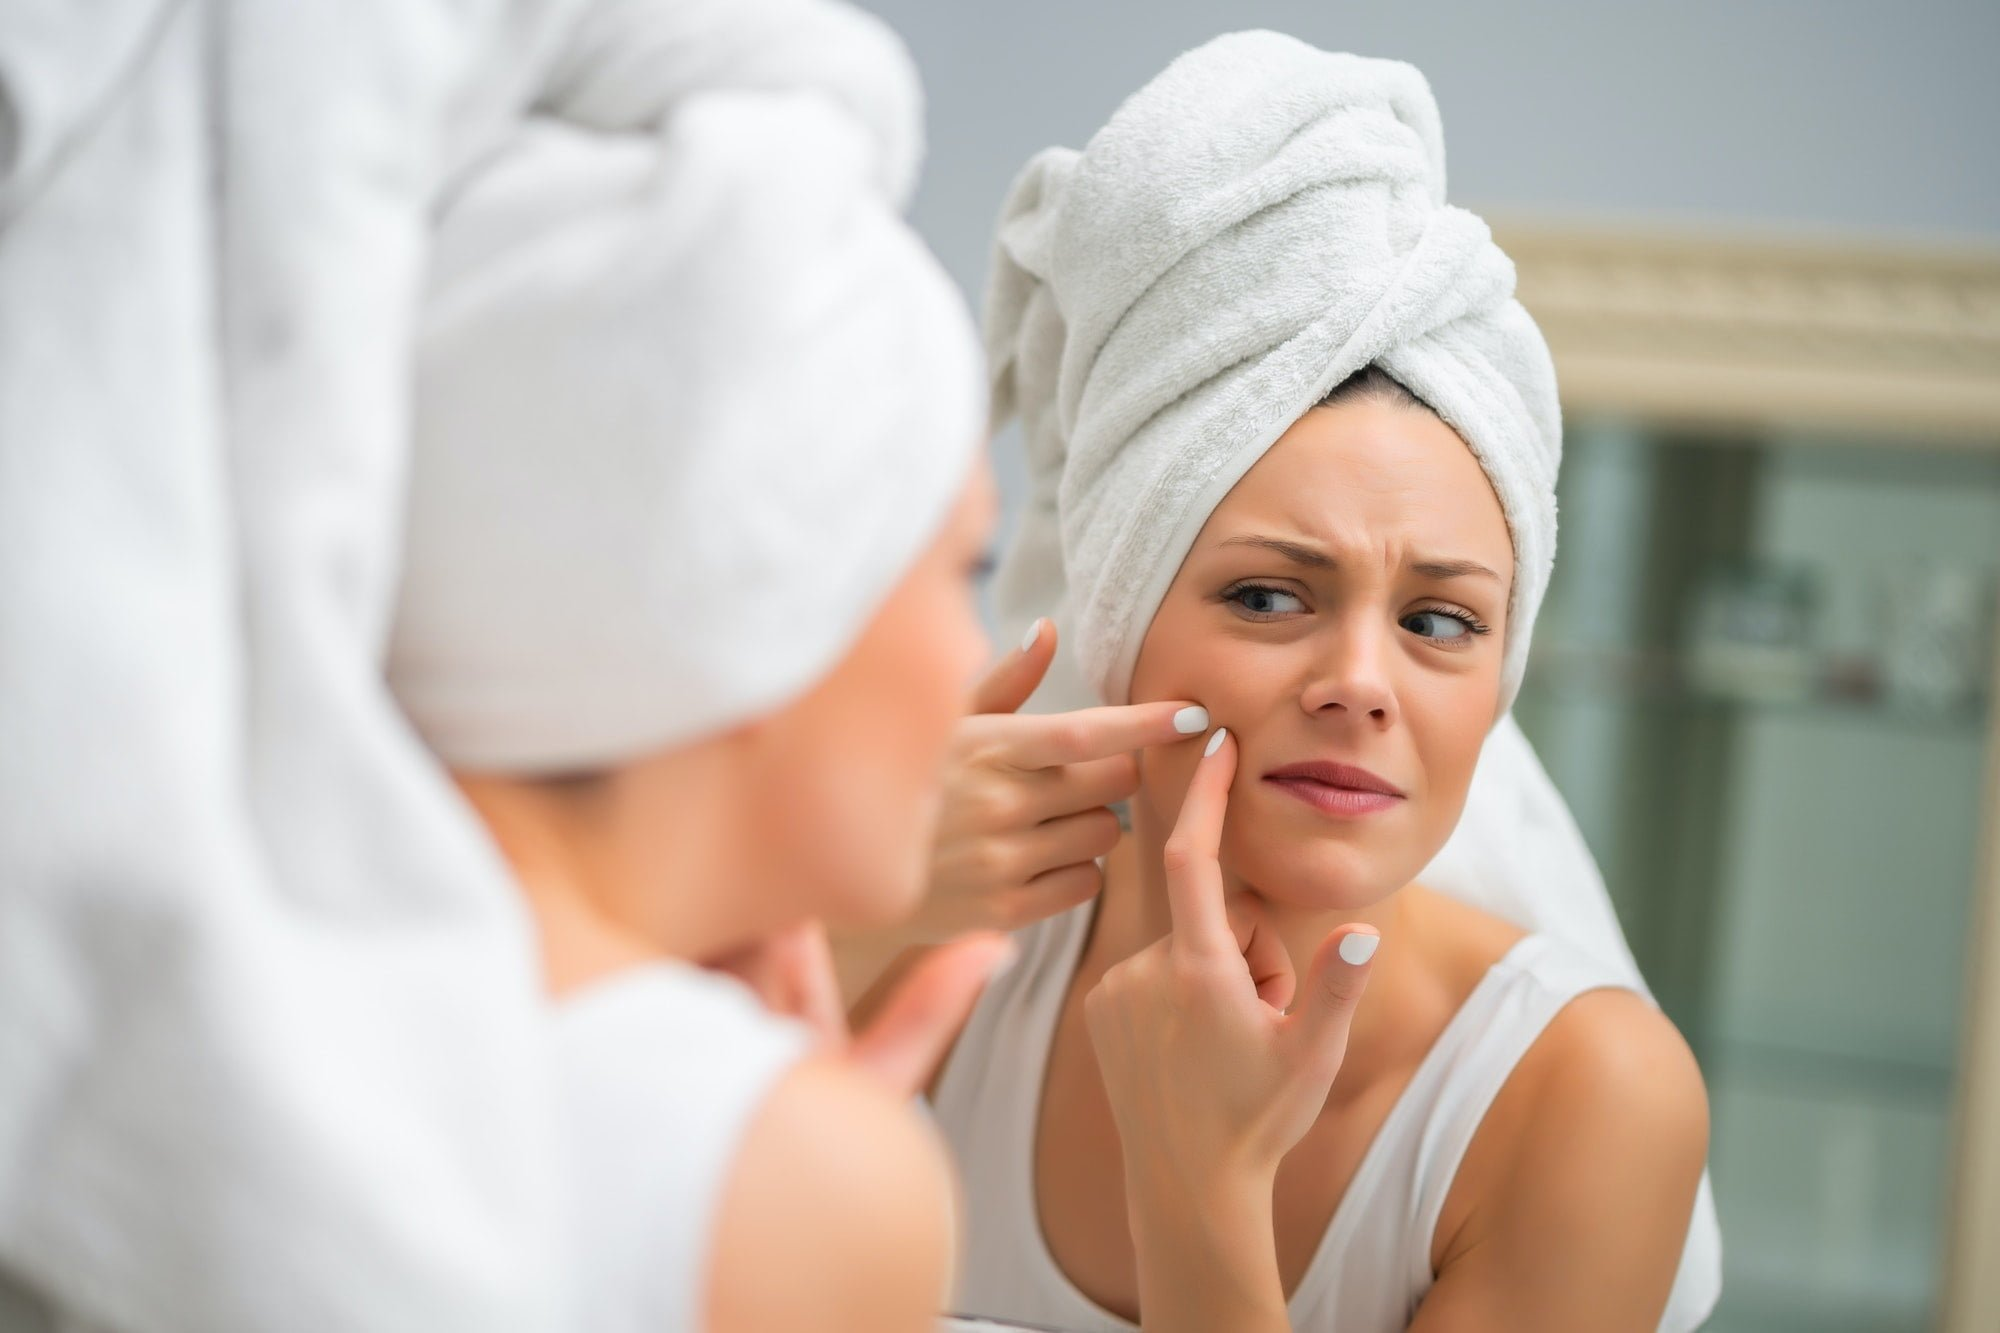 Woman squeezing pimple